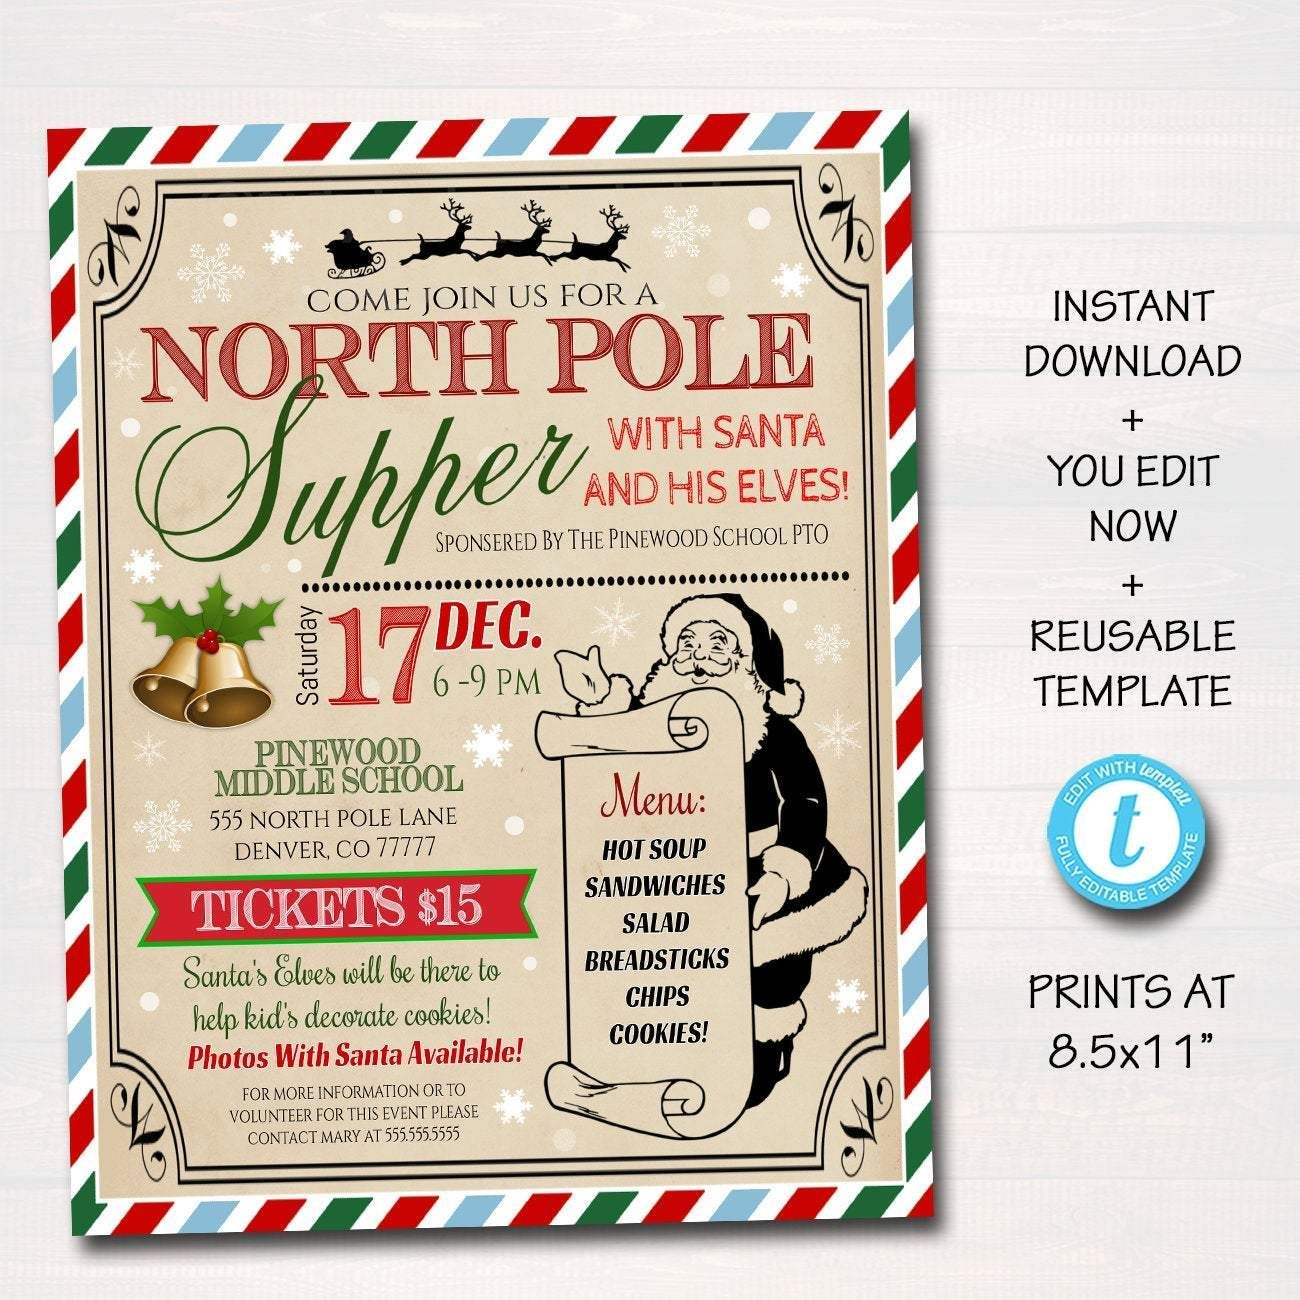 EDITABLE Supper with Santa Flyer & tickets North Pole Dinner Invitation, Kids Christmas Party, Printable Community Holiday Event Flyer #northpolebreakfast EDITABLE Supper with Santa Flyer & tickets North Pole Dinner Invitation, Kids Christmas Party, Printable Community Holiday Event Flyer #northpolebreakfast